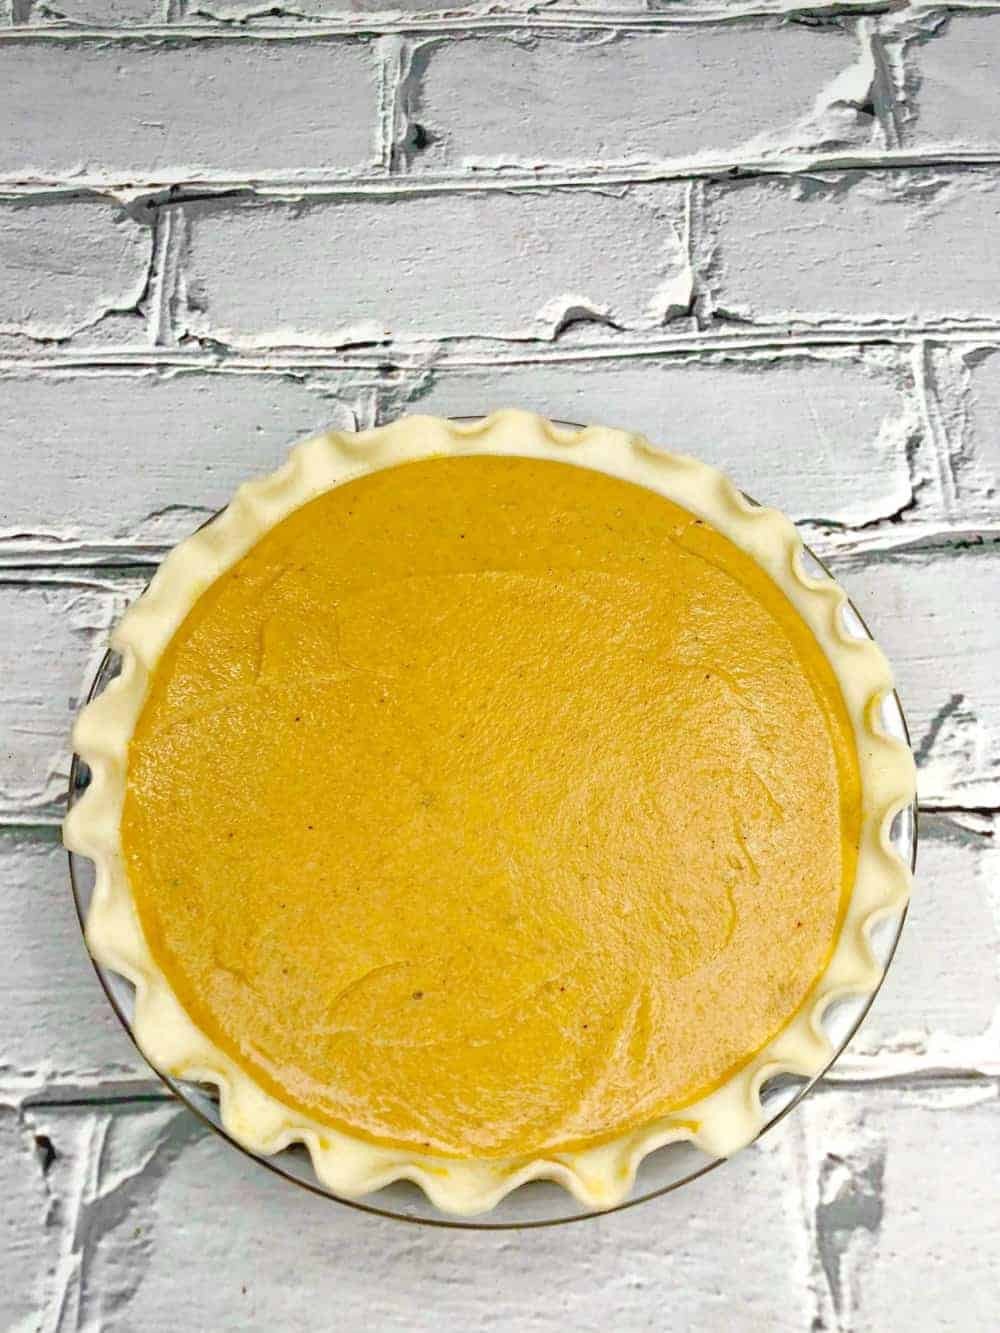 Sweet Potato Pie with no toppings